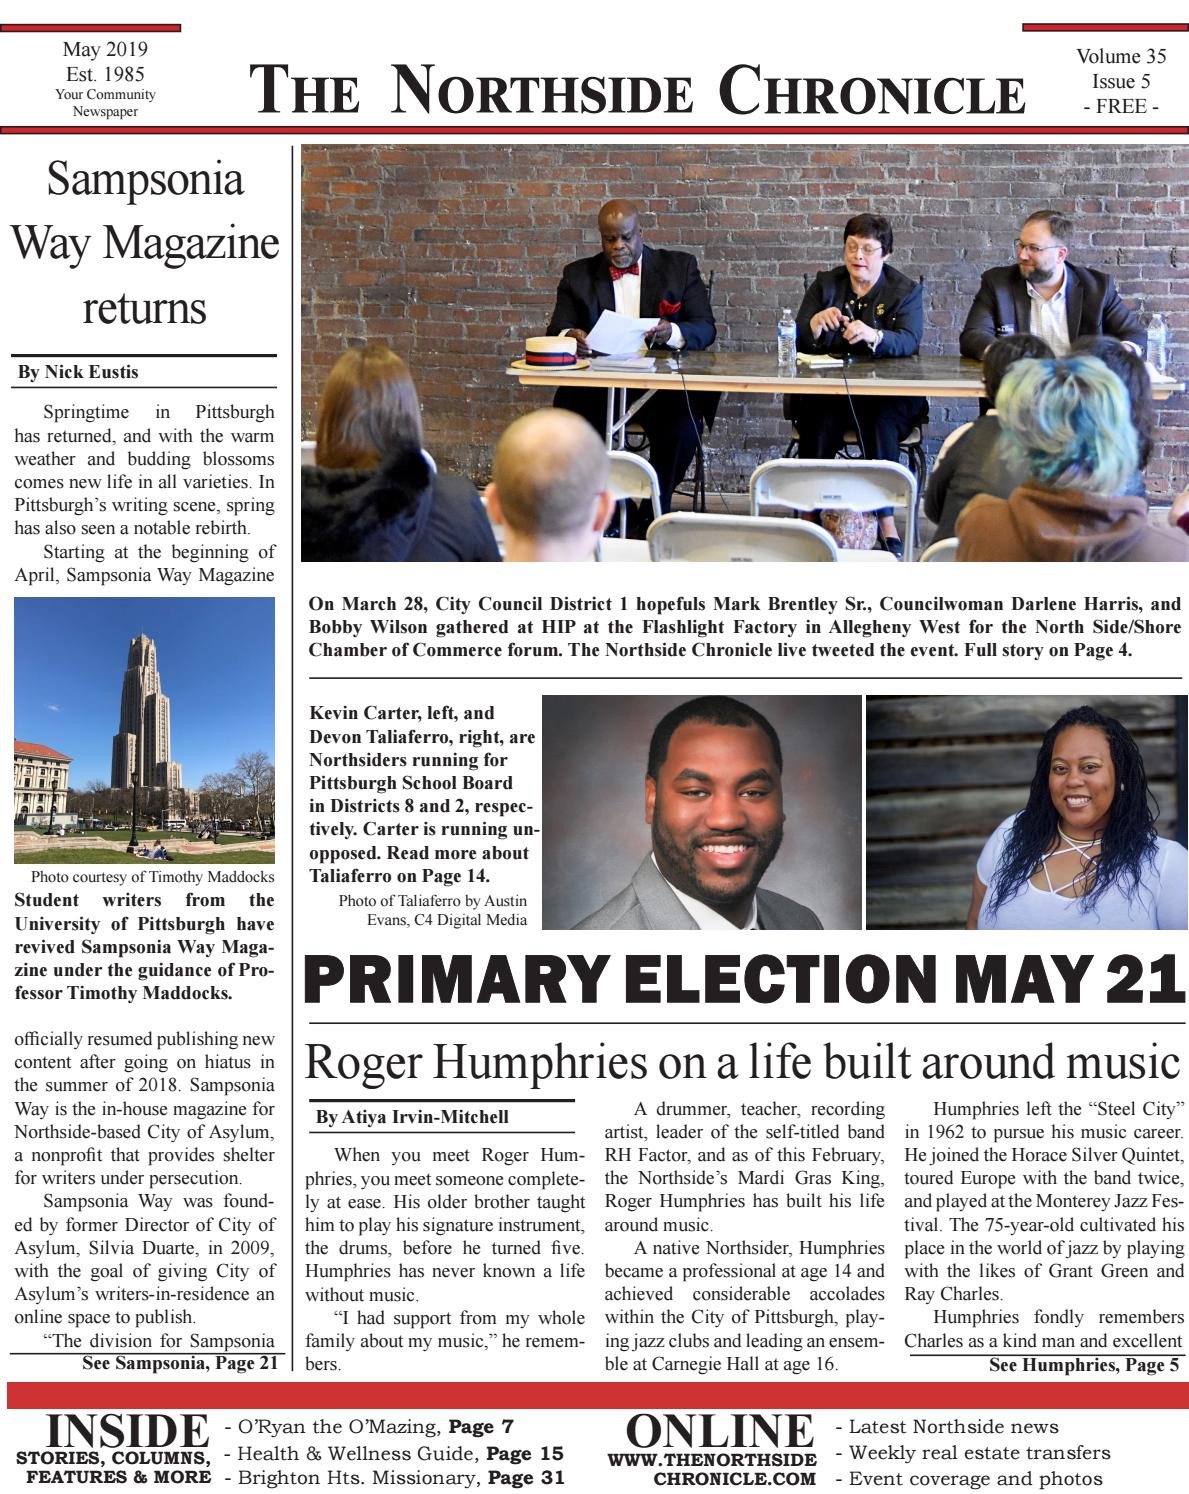 The Northside Chronicle, Pittsburgh - May 2019 by The